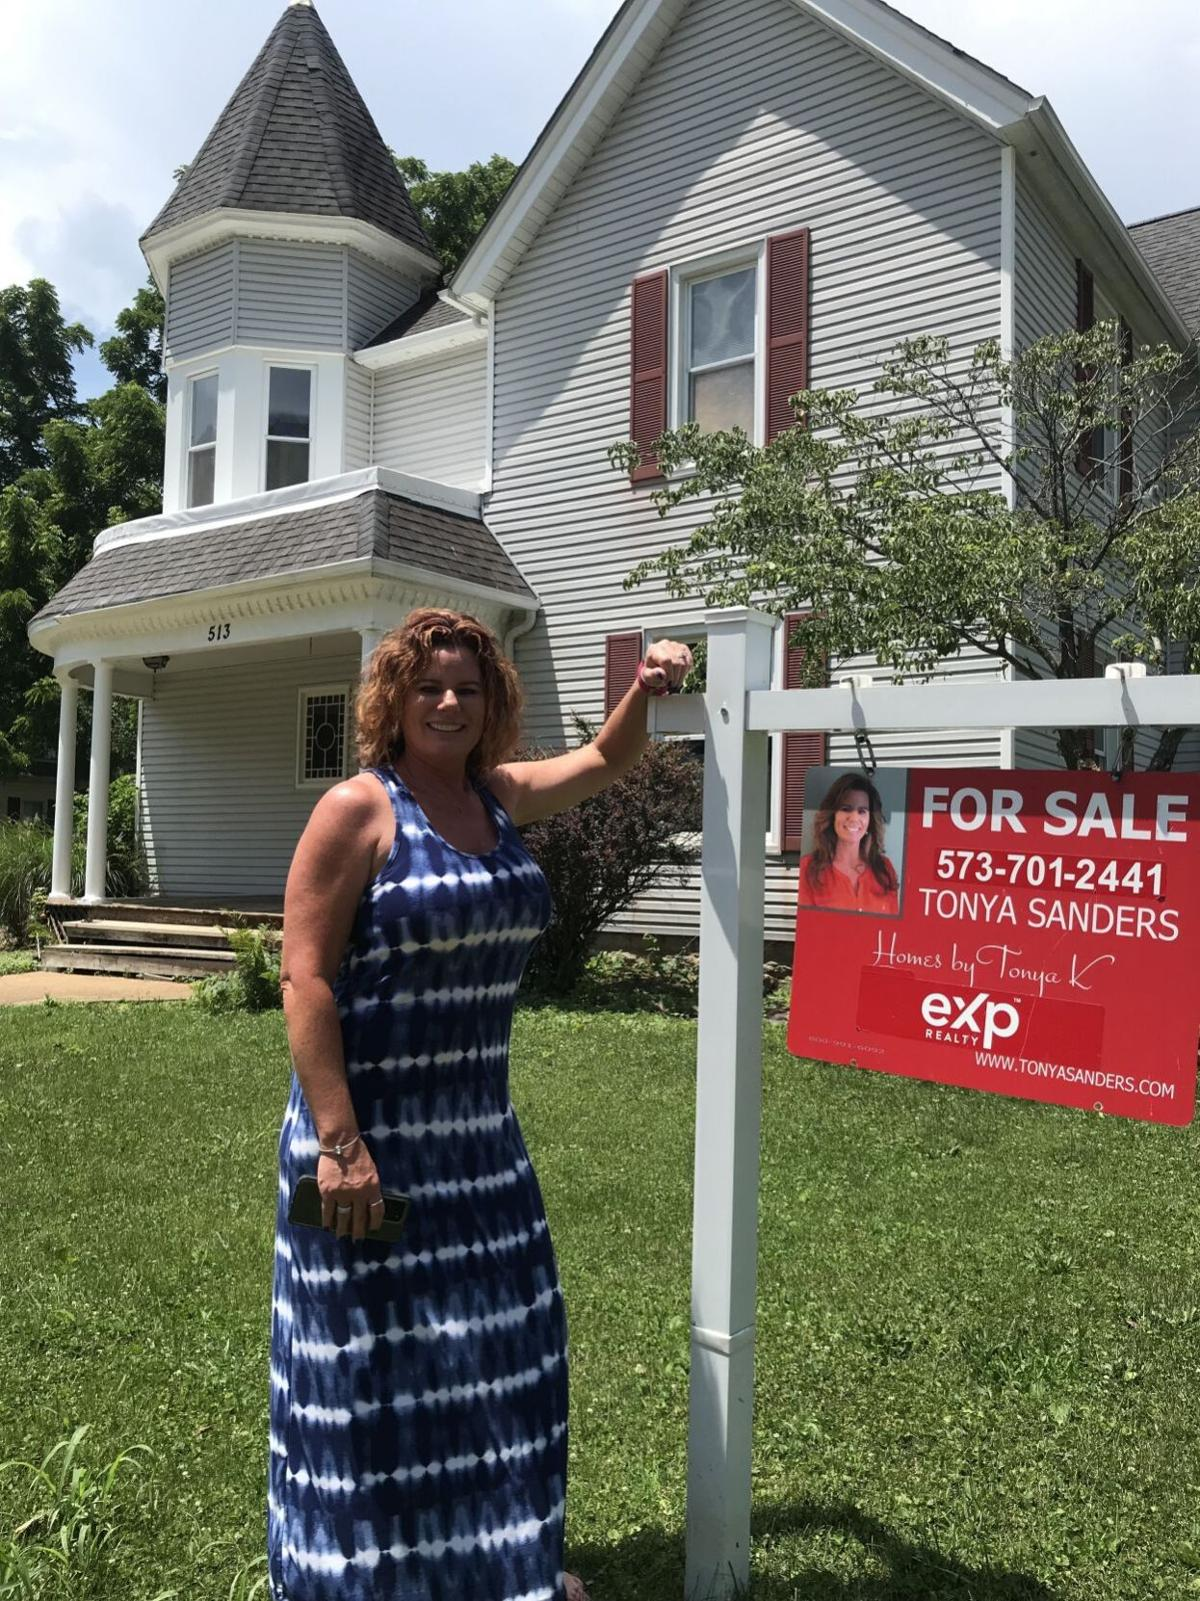 It's a sellers market in local real estate